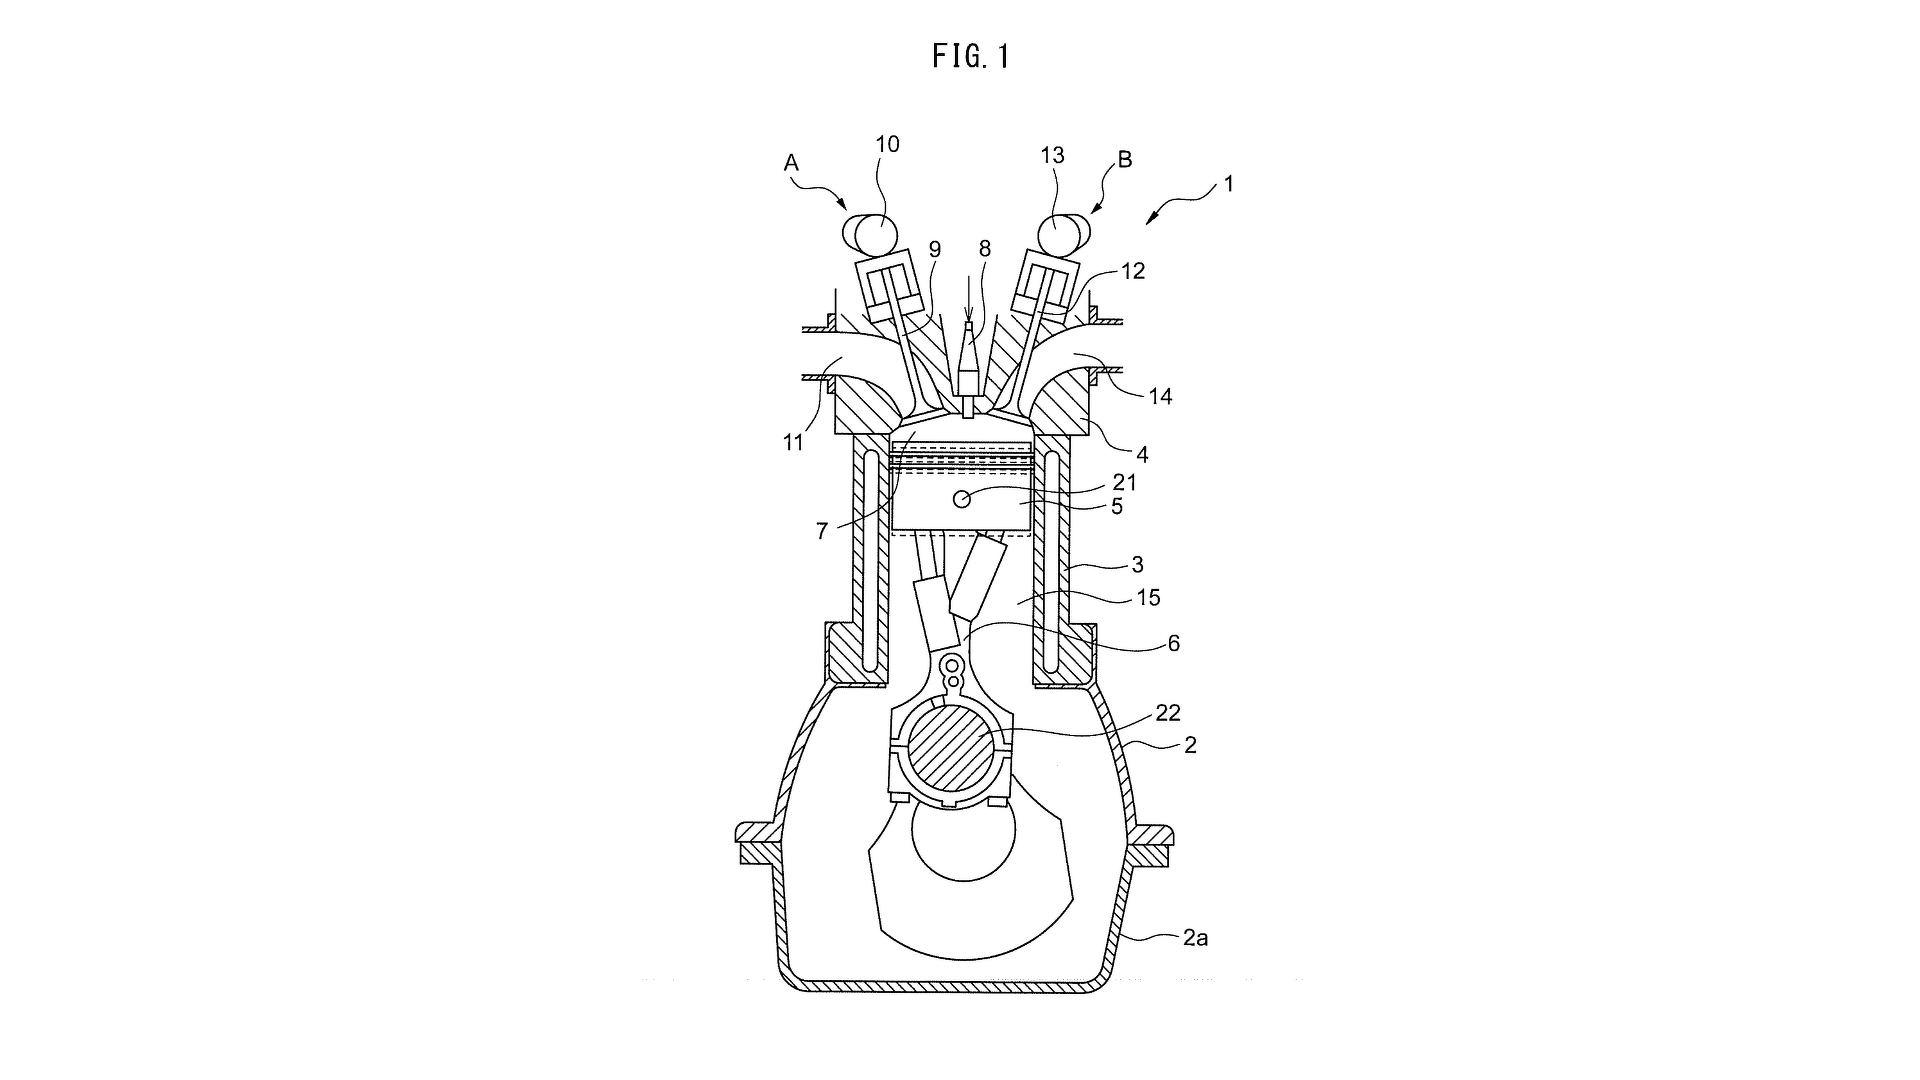 Toyota Variable Compression Engine Patent Shows Ice Not